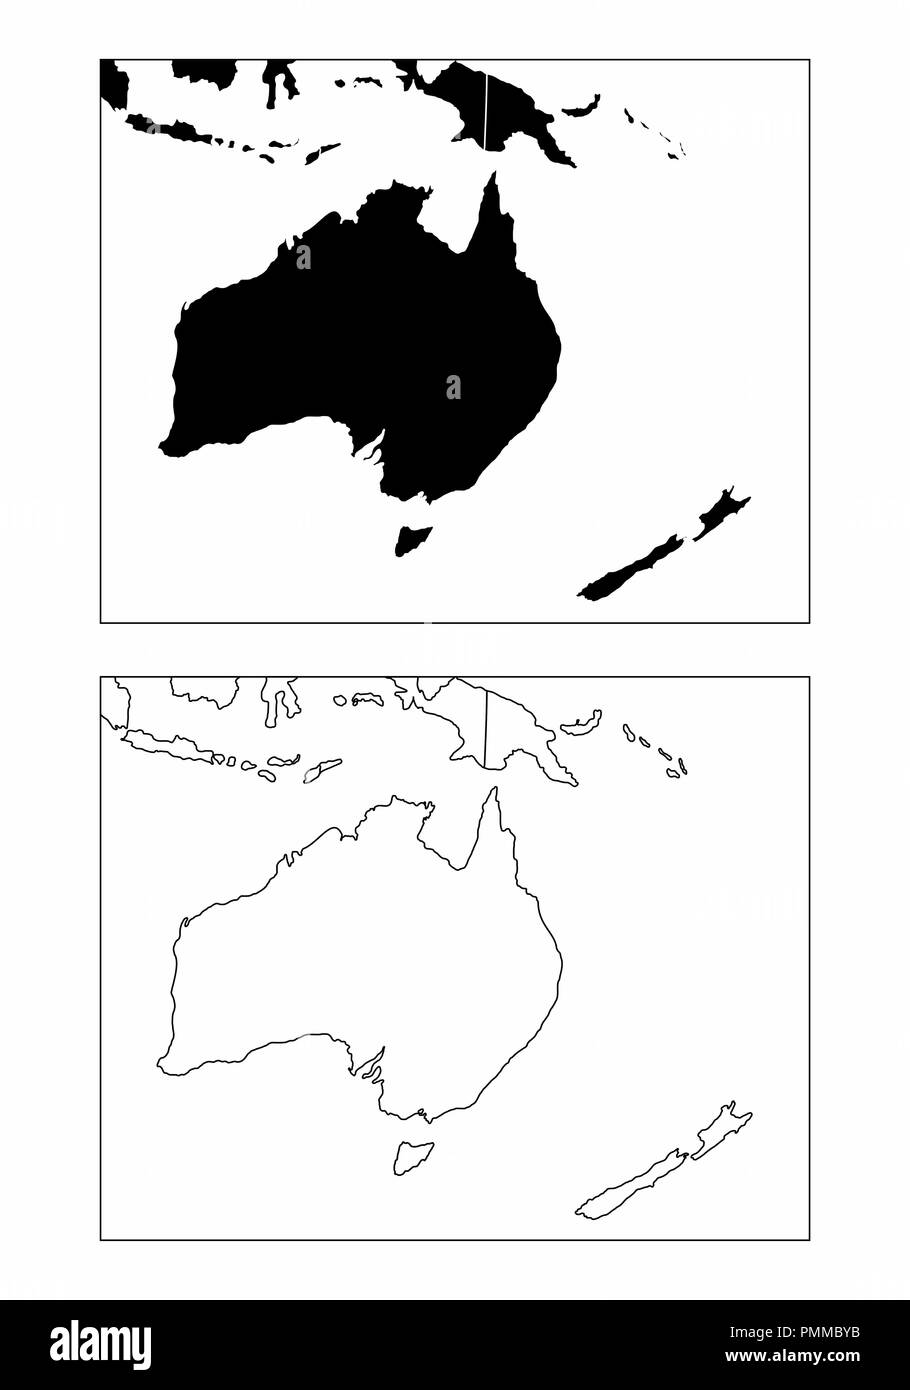 Simplified maps of the Oceania with countries borders. Black and white outlines. - Stock Image